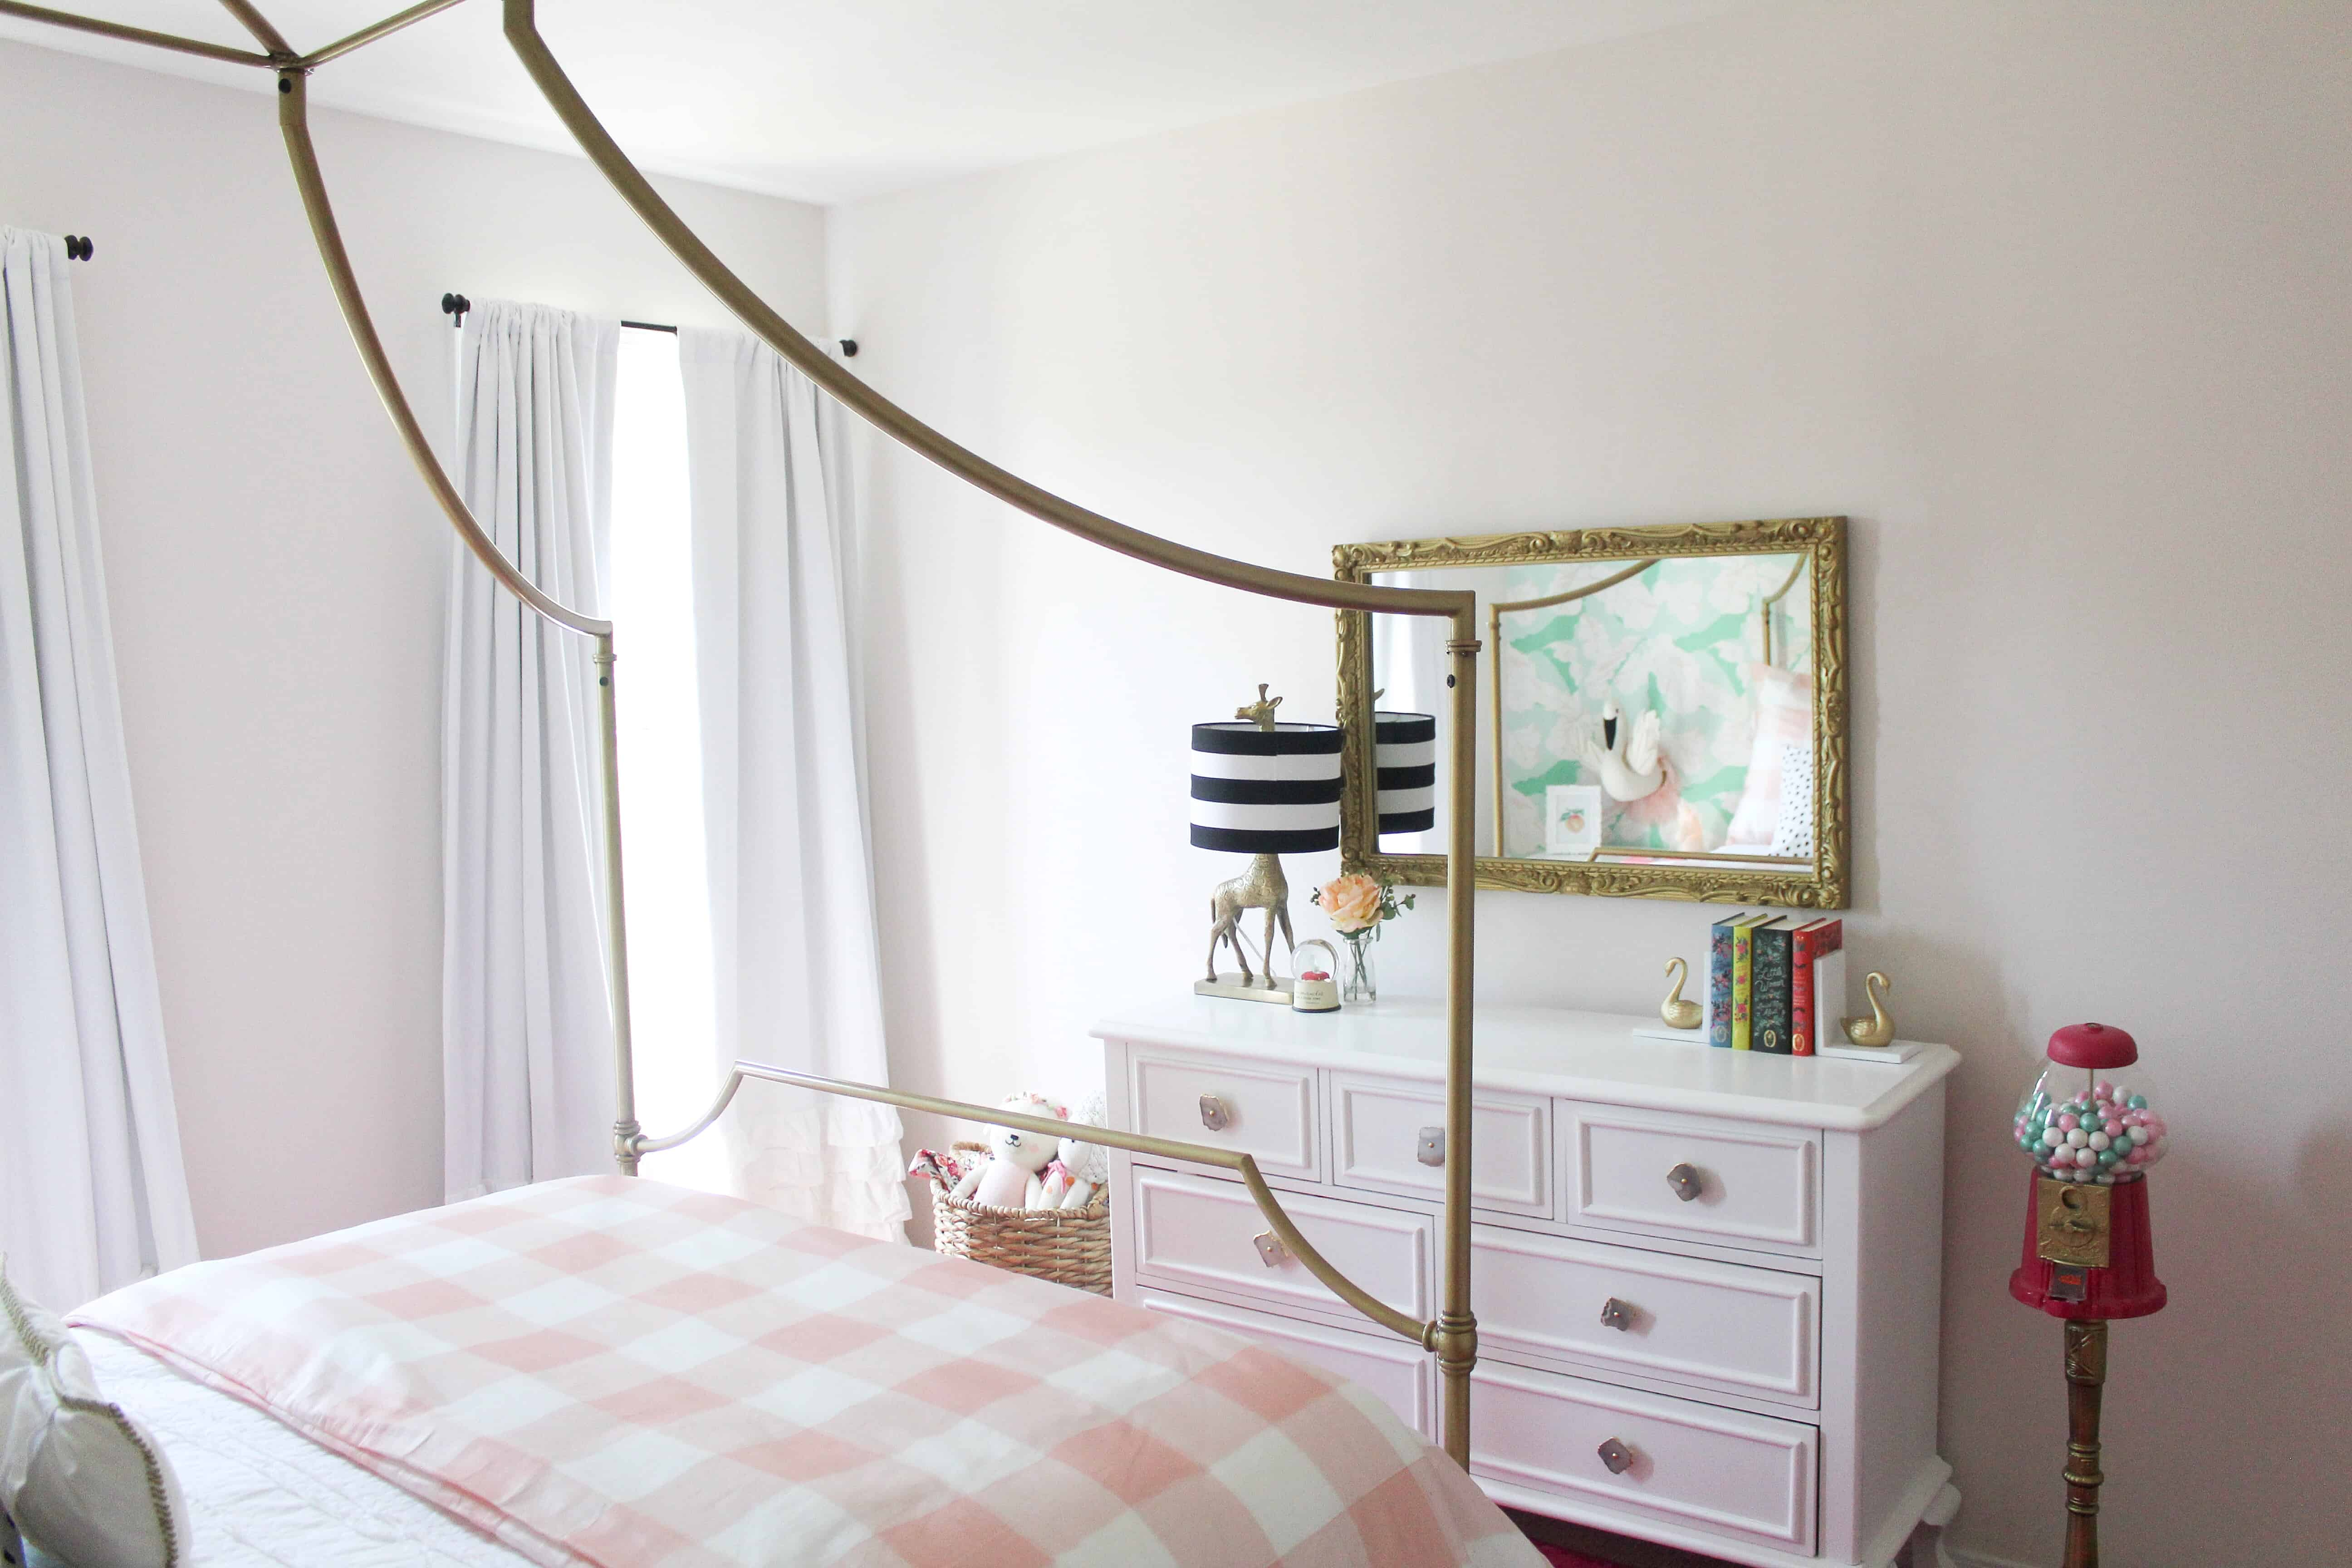 Toddler girl room with gold mirror and bed